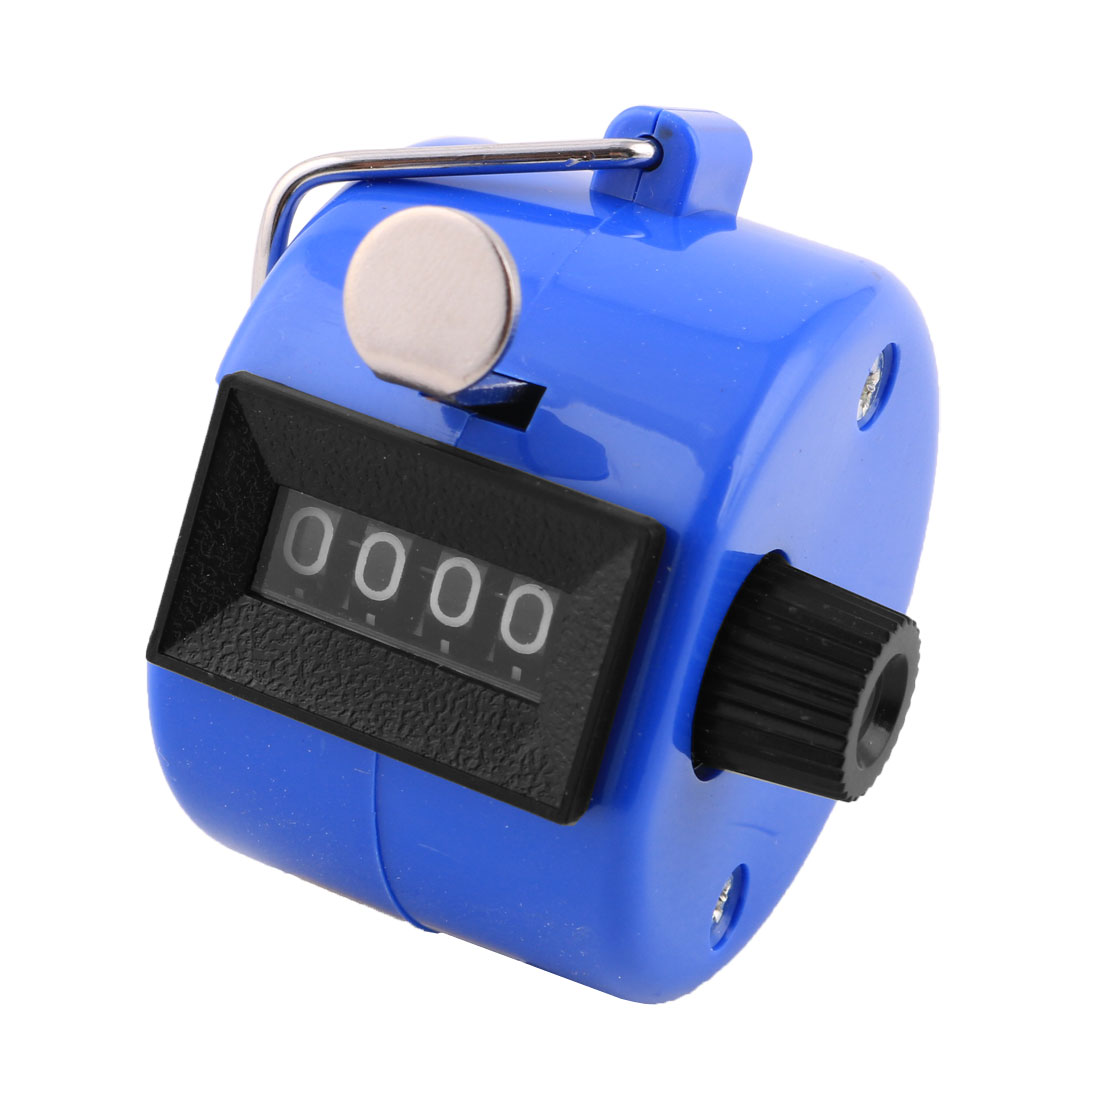 Office Desk Handheld 4 Digit Numbers Display Tally Click Counter Blue